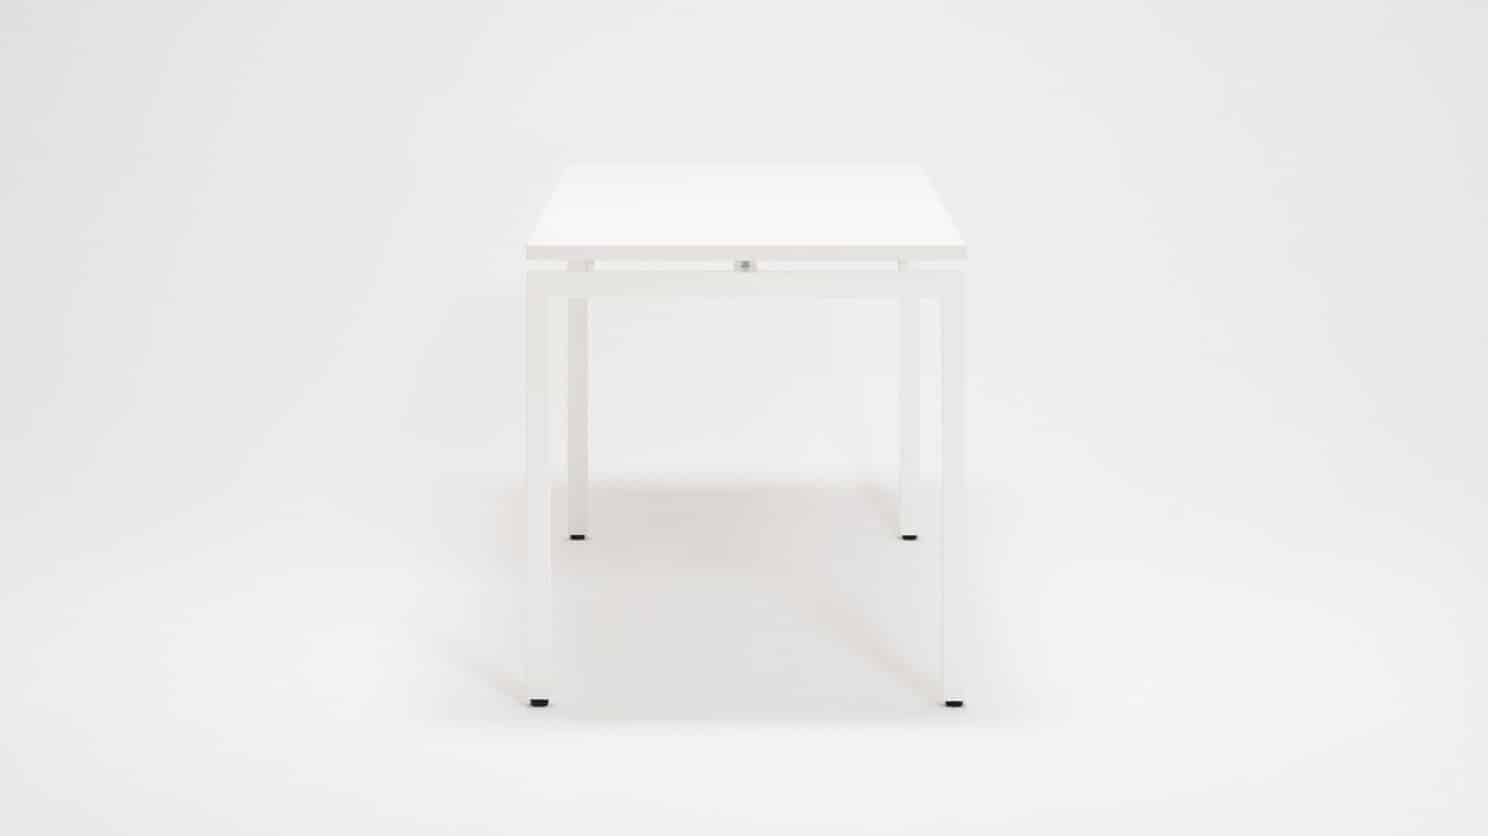 7220 100 par 3 desks novah 63 desk white top white base side 01